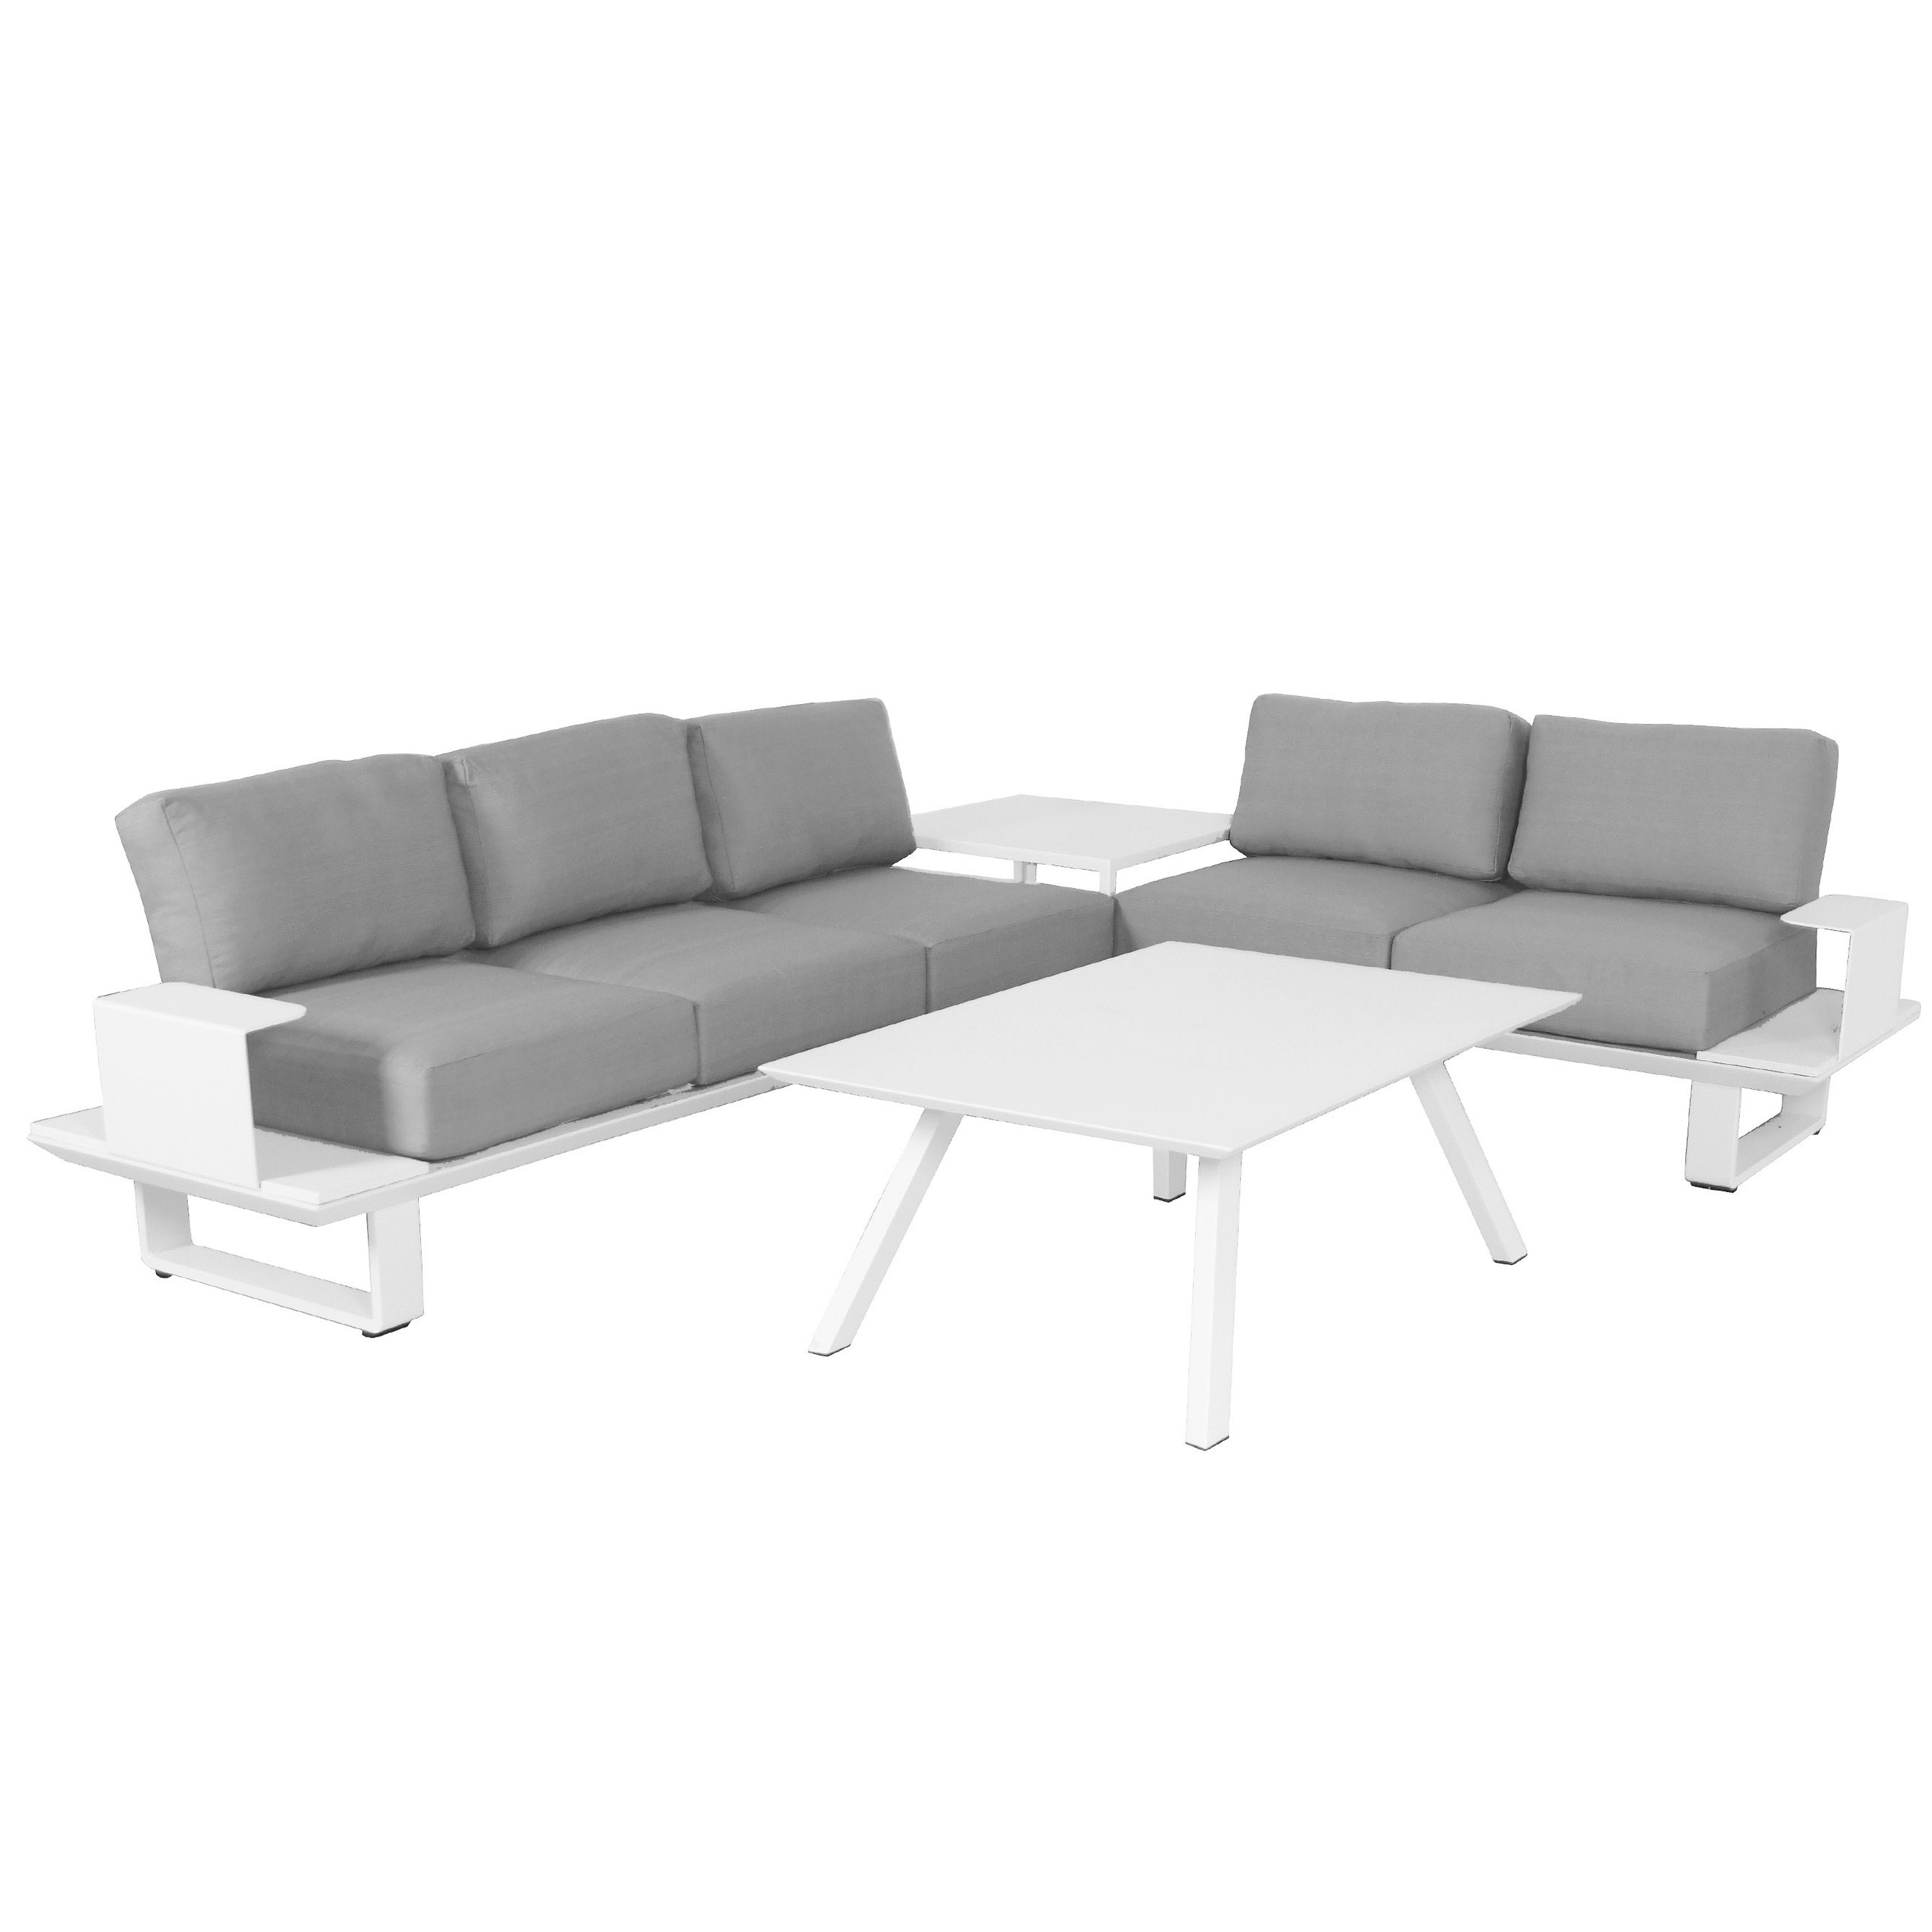 Adeline 3 Piece Sectionals With Regard To Popular Sunset 3 Piece Sectional – Free Shipping Today – Overstock – (View 10 of 20)